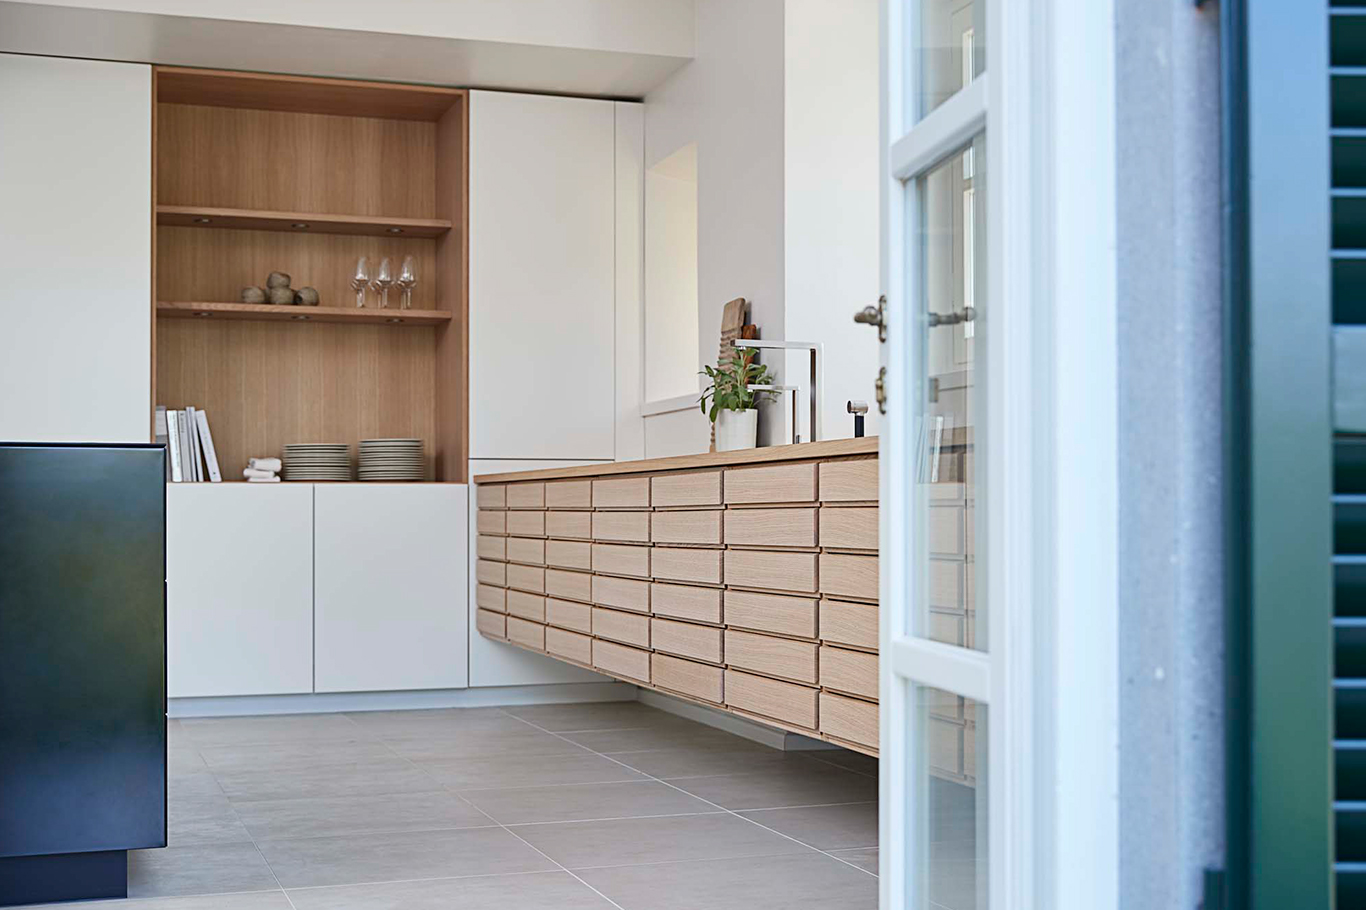 The kitchen in Villa Pacini has been fitted out with the design classic Form 1 in oak